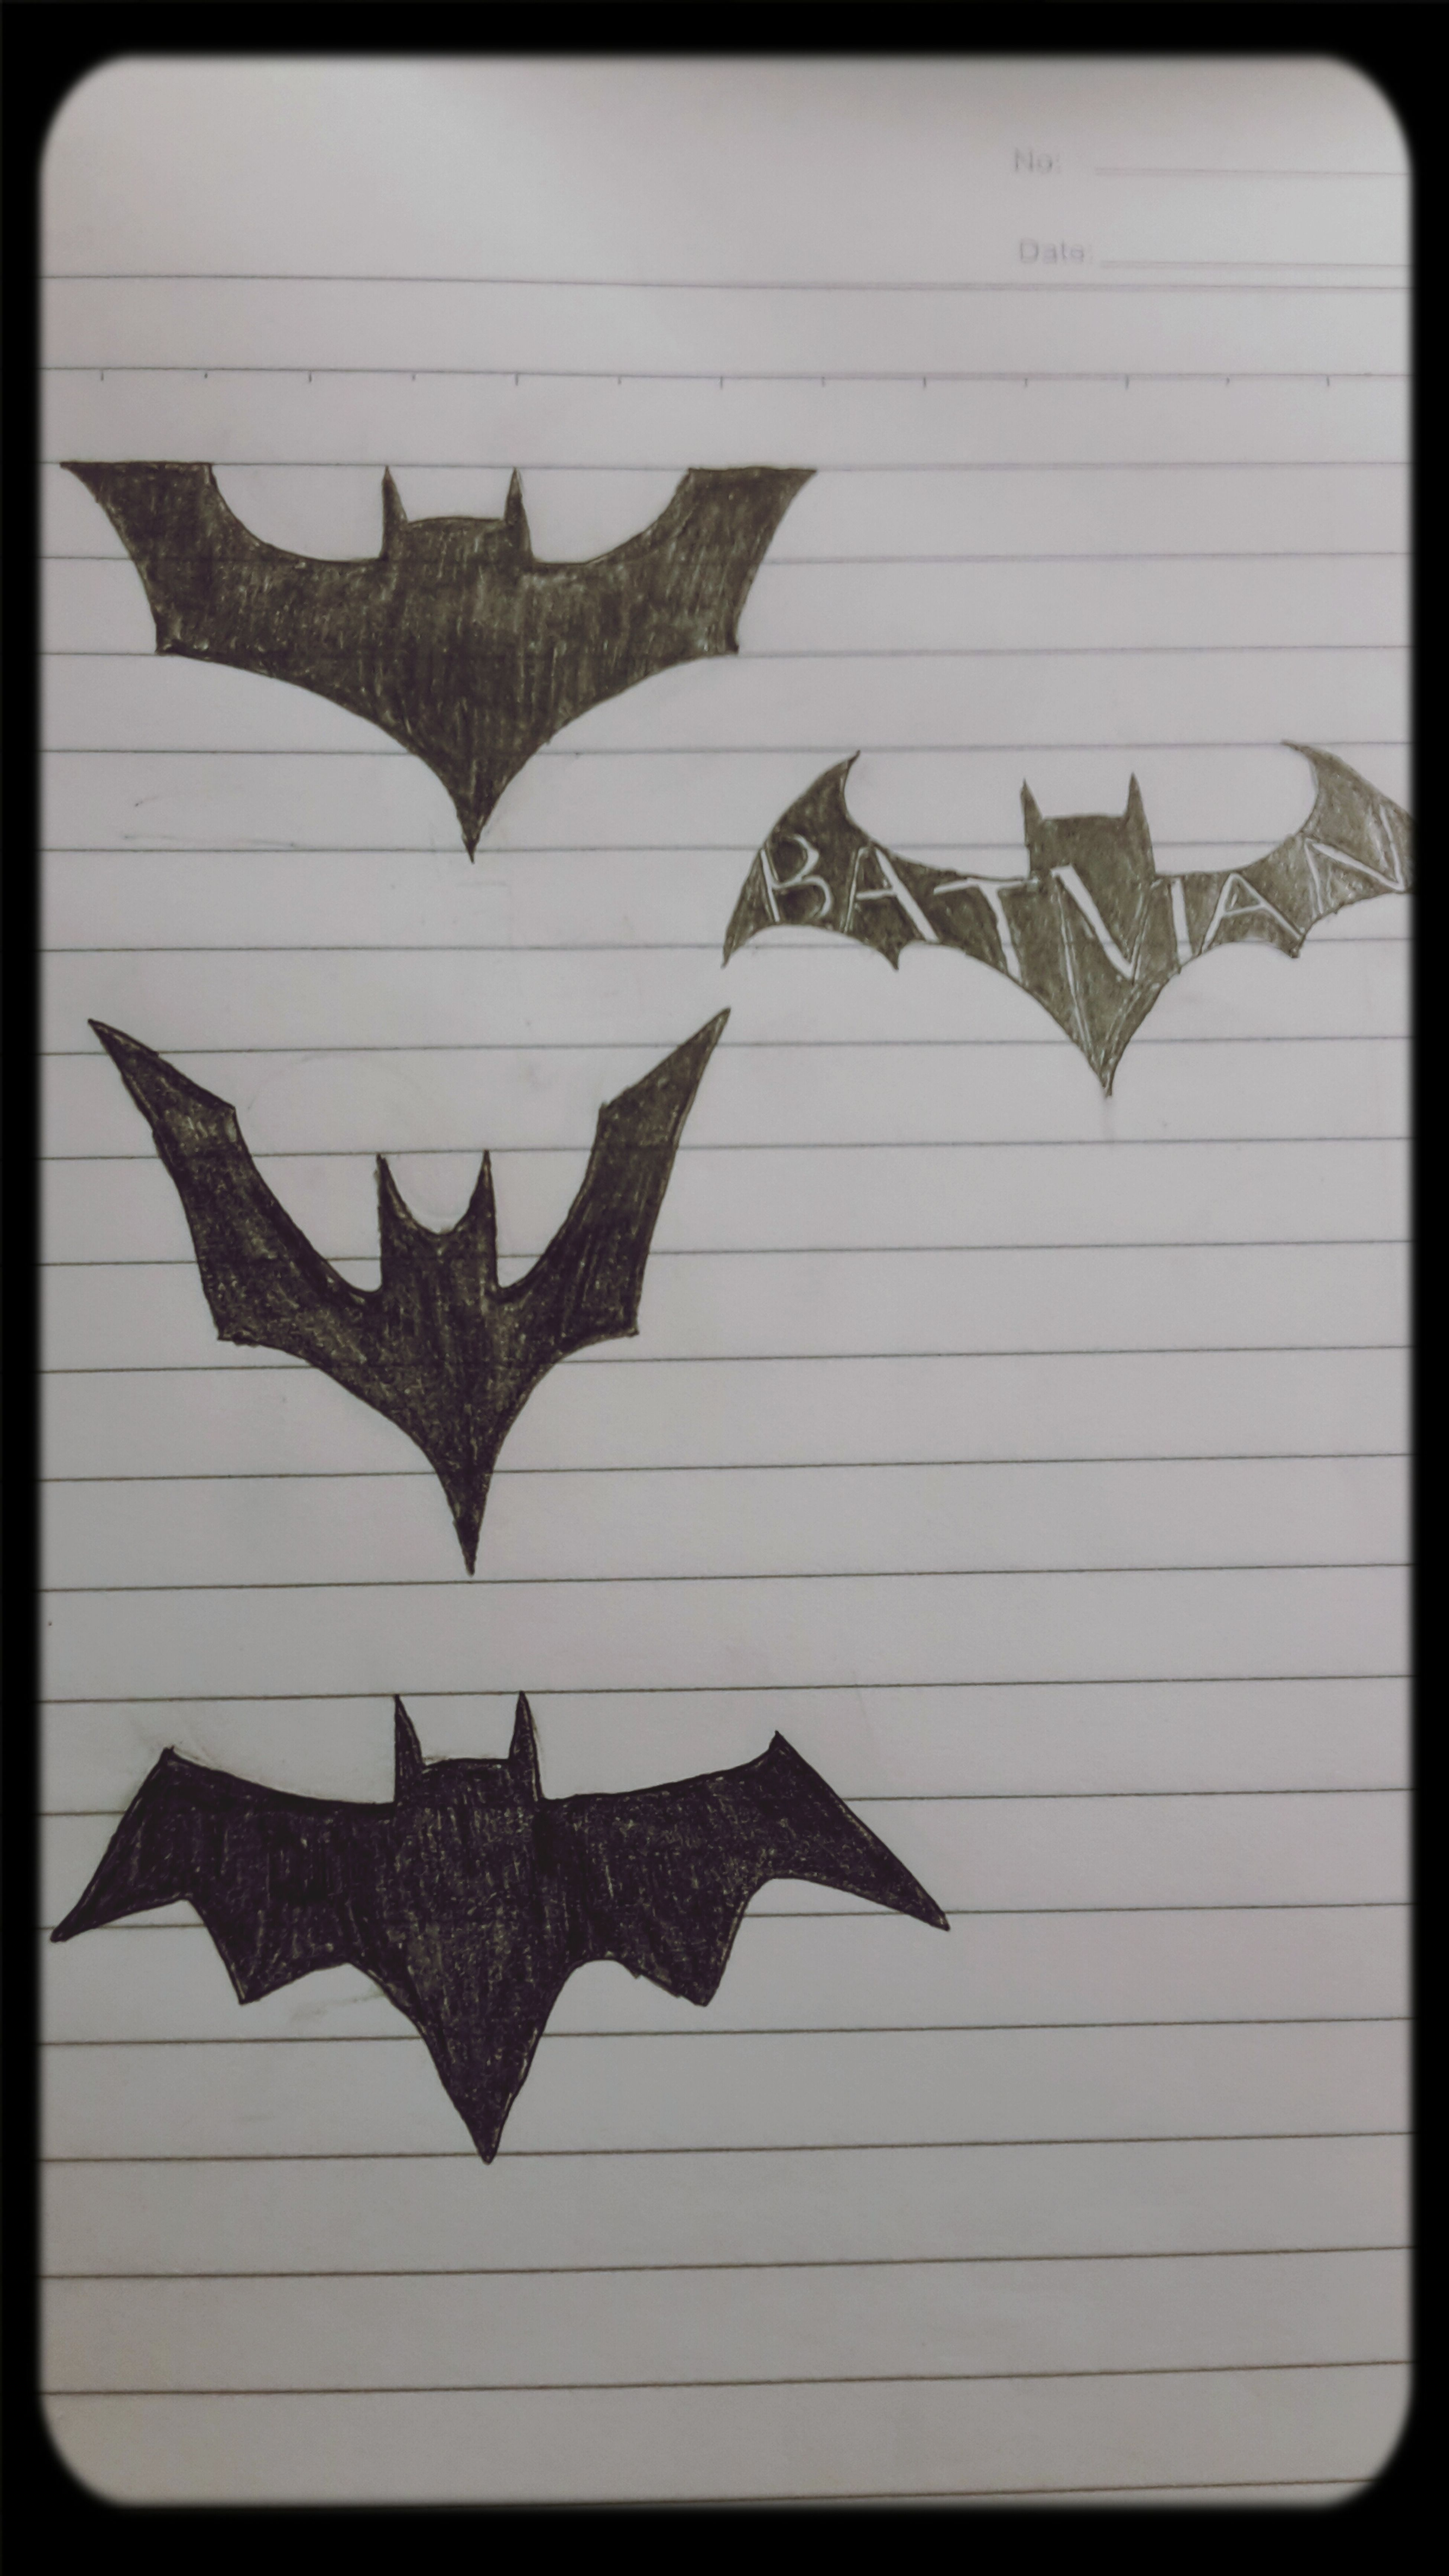 I was bored in class and I drew these Batman Sketch IIUM UNGS